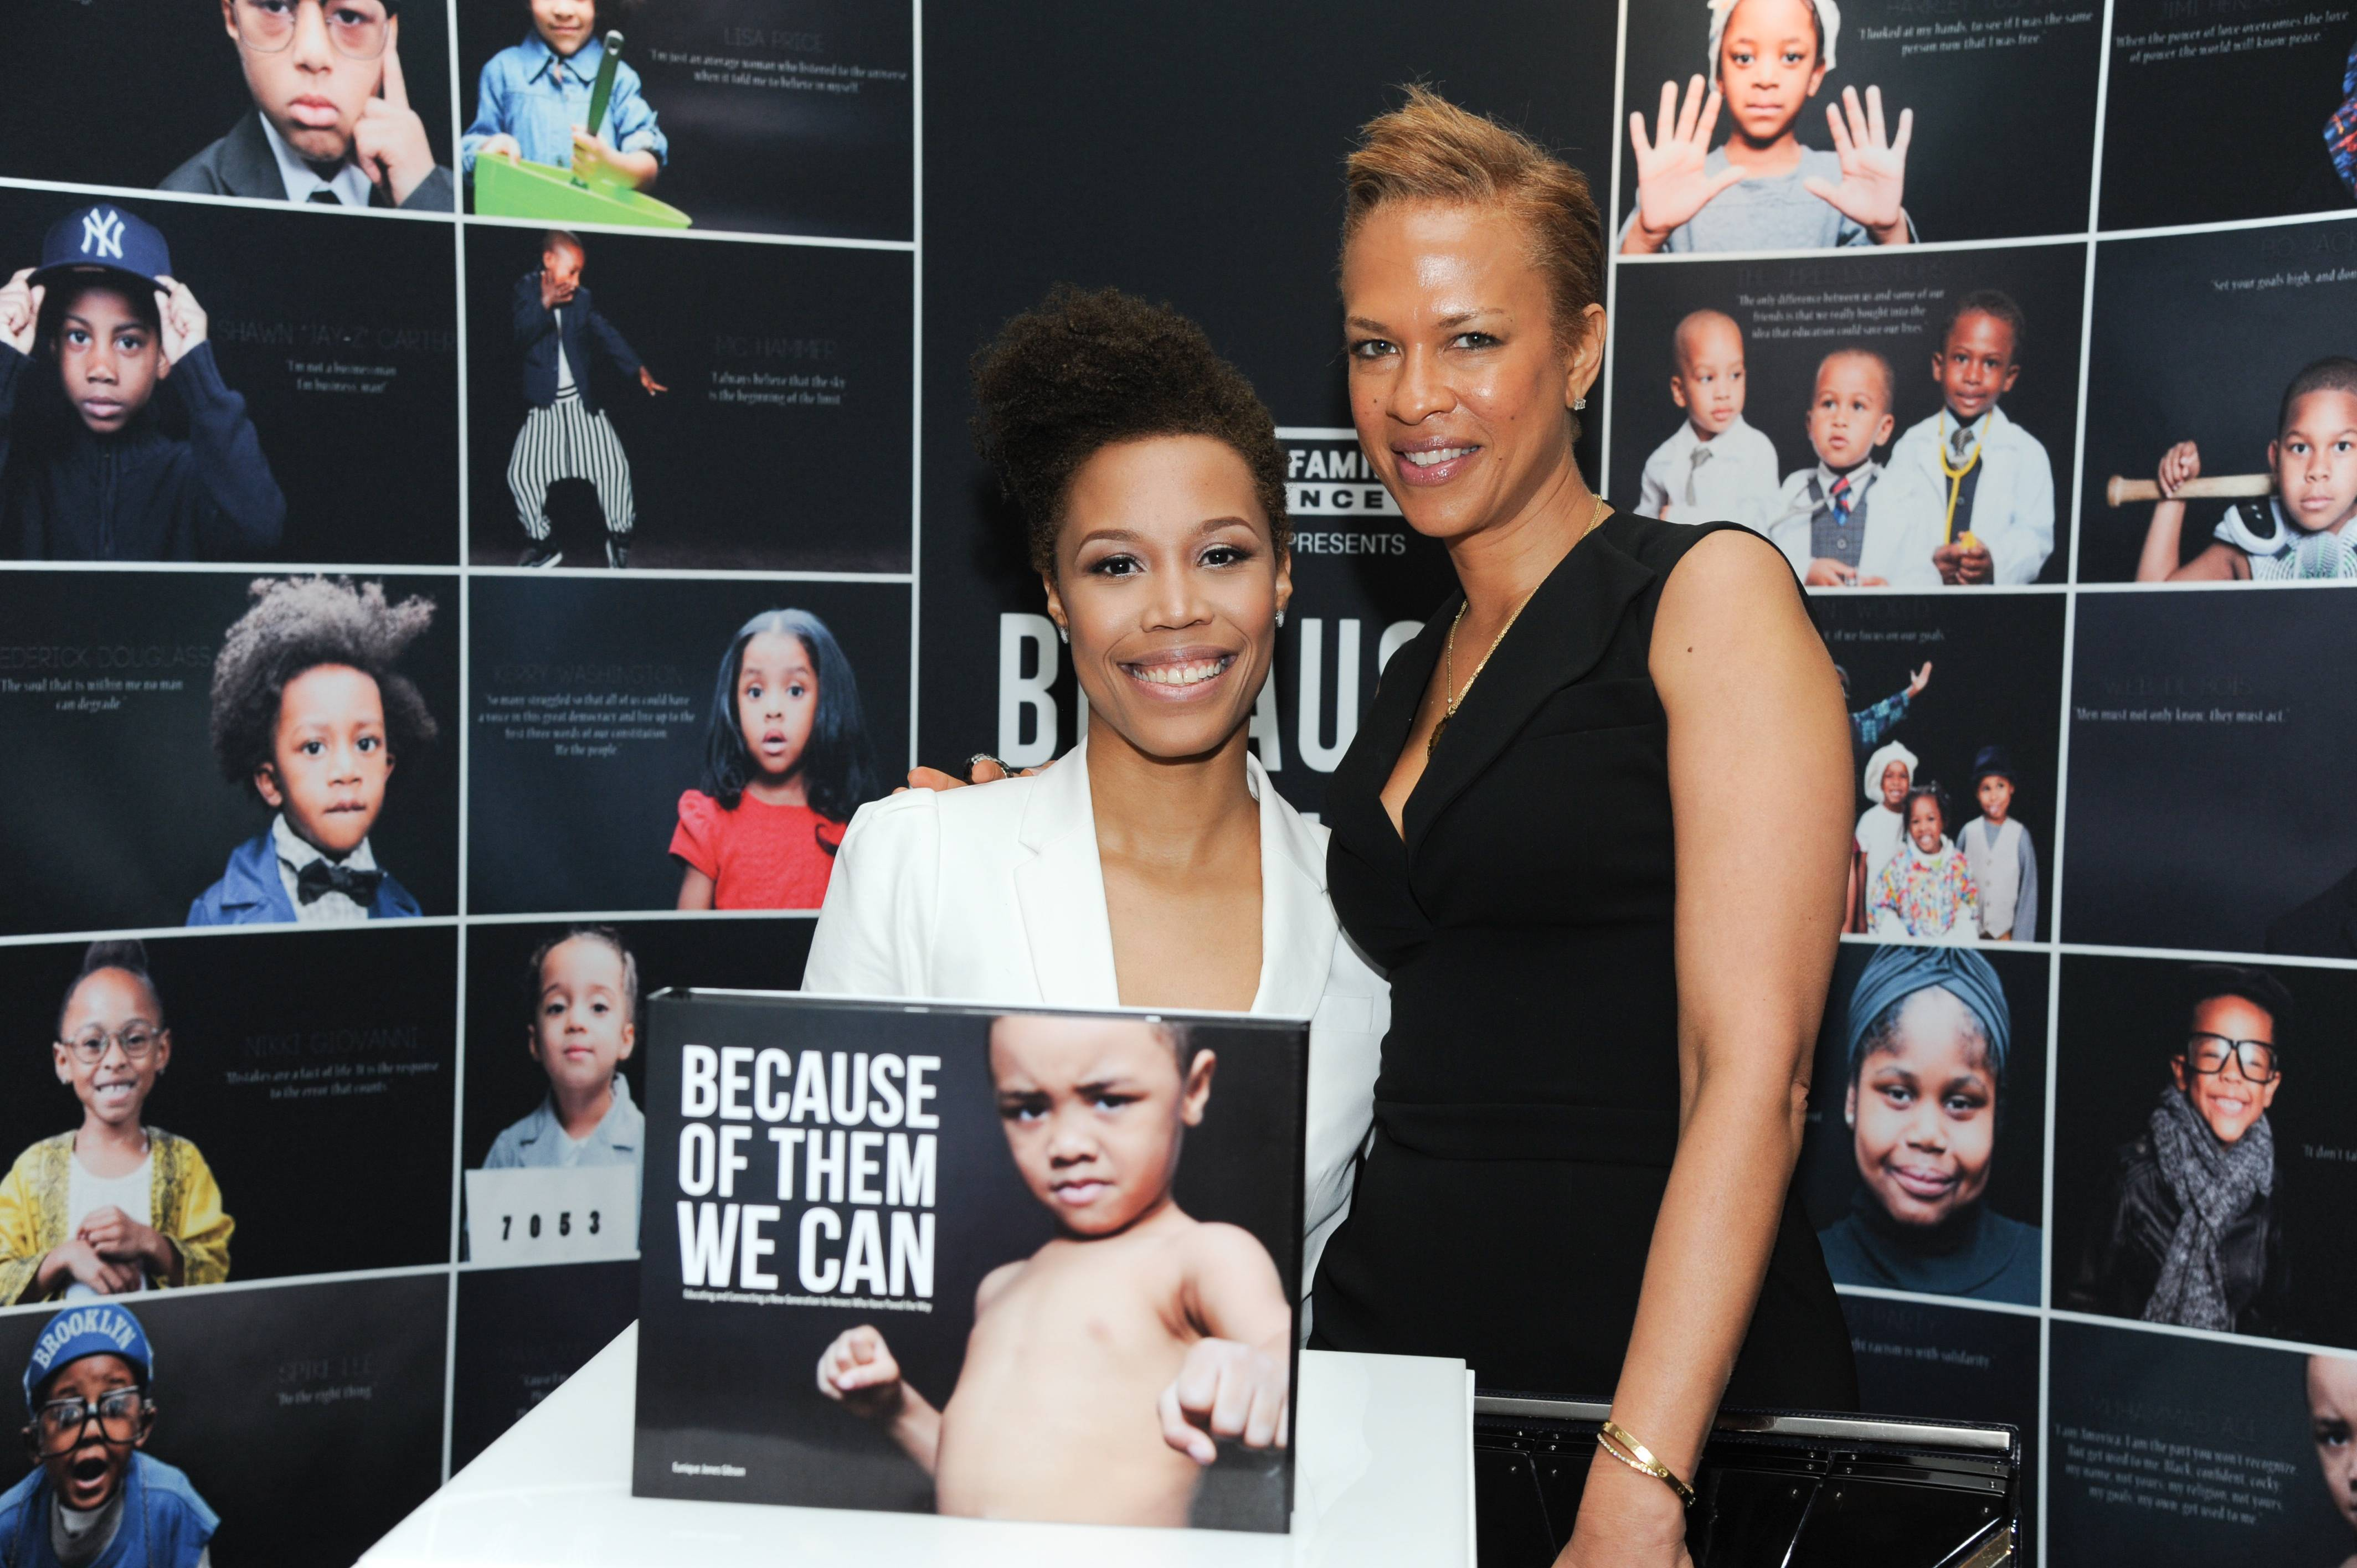 Eunique Jones, Tonya Lewis Lee - The inspirational photographer poses alongside Tonya Lewis Lee at the Dream Wall installation during the Leading Women Defined conference in Miami.   (Photo: Vladimir Banjanac for BET)